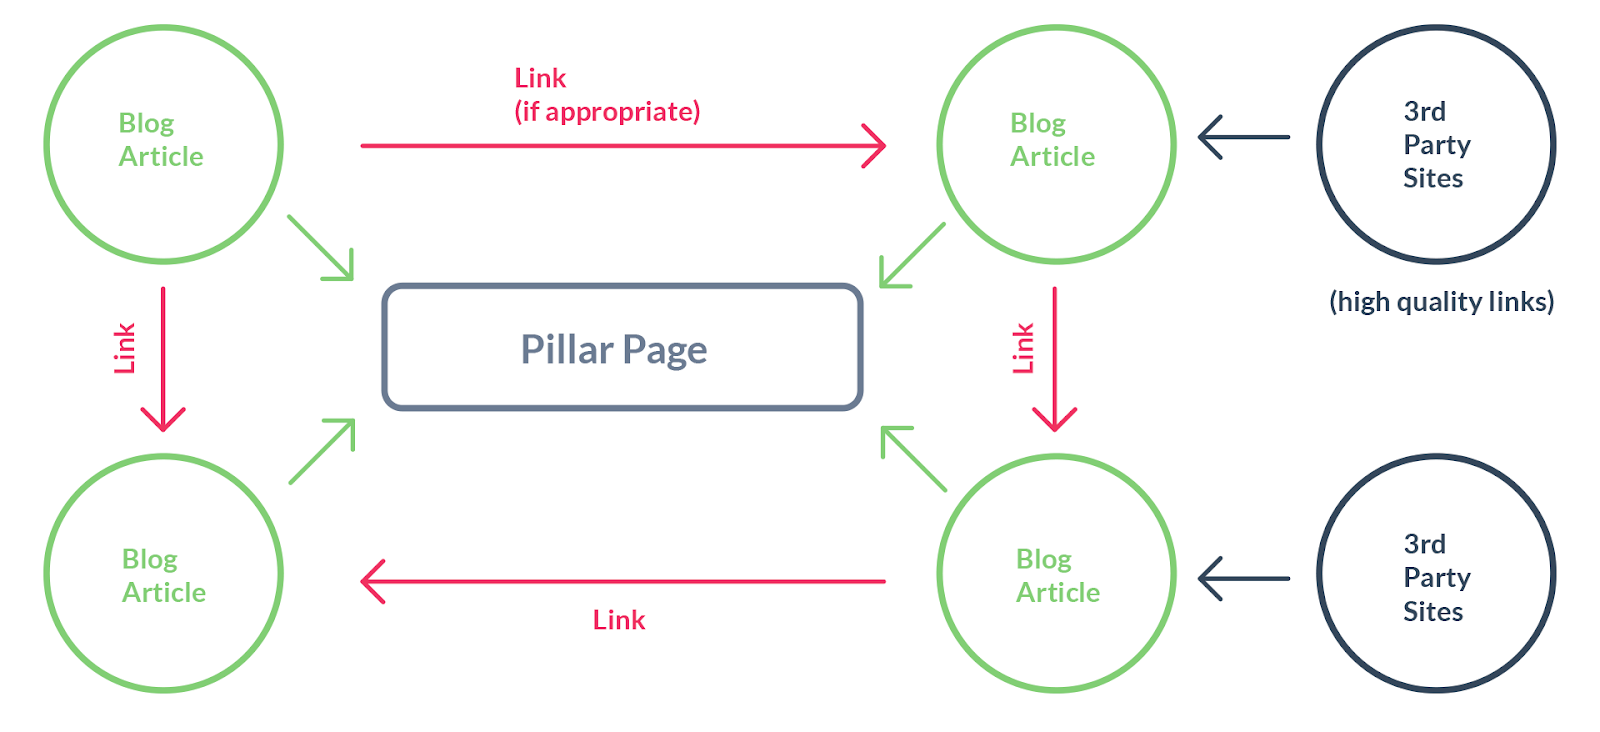 Diagram of a pillar page and cluster content describing how they work to rank highly on search engine results pages.